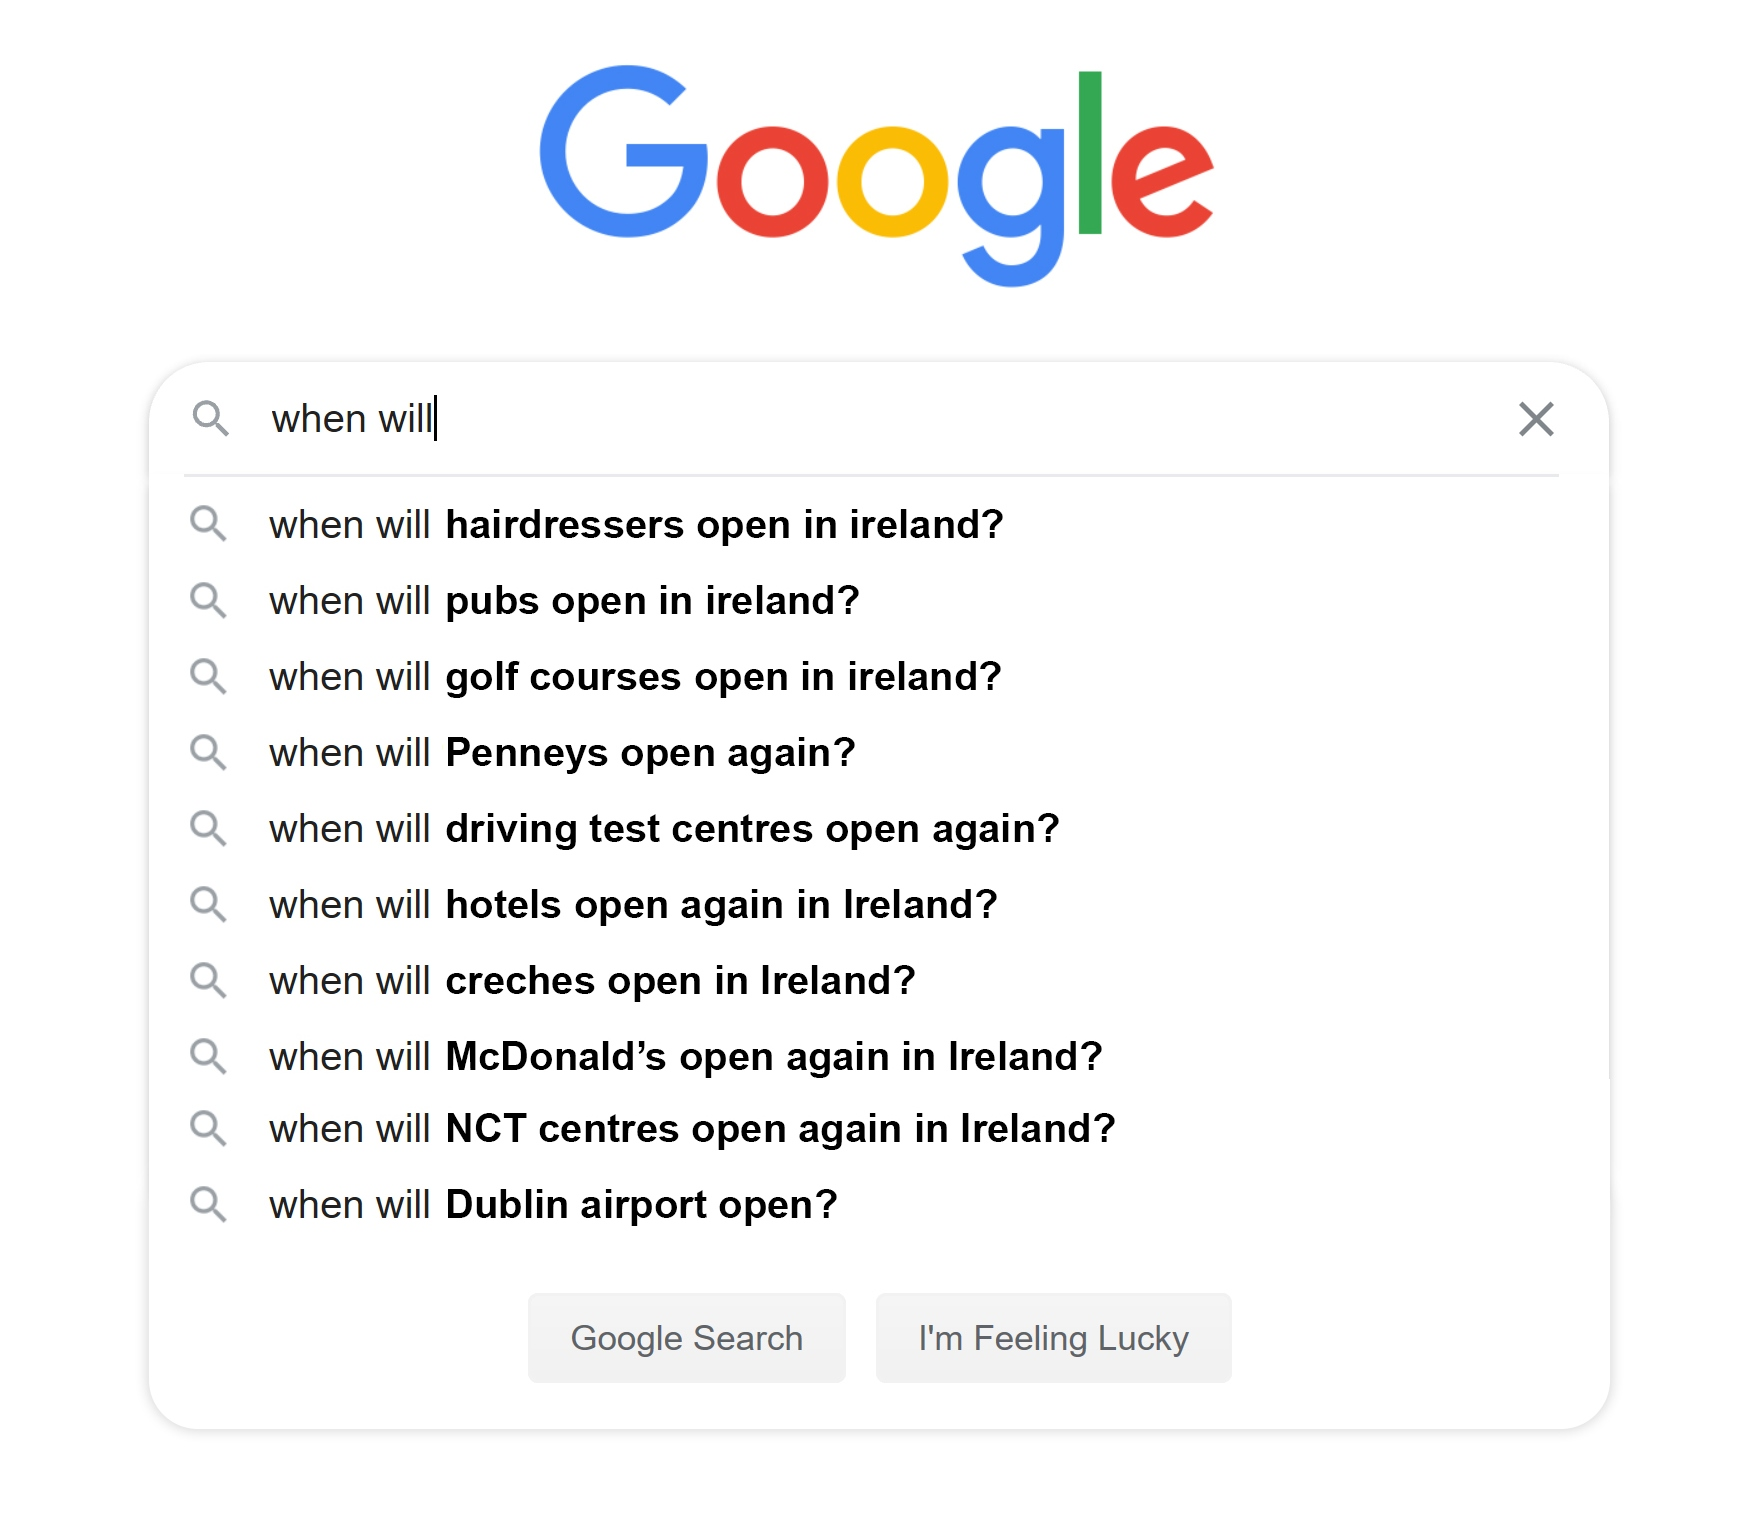 Screenshot of a google search for when different industries will open again in Ireland